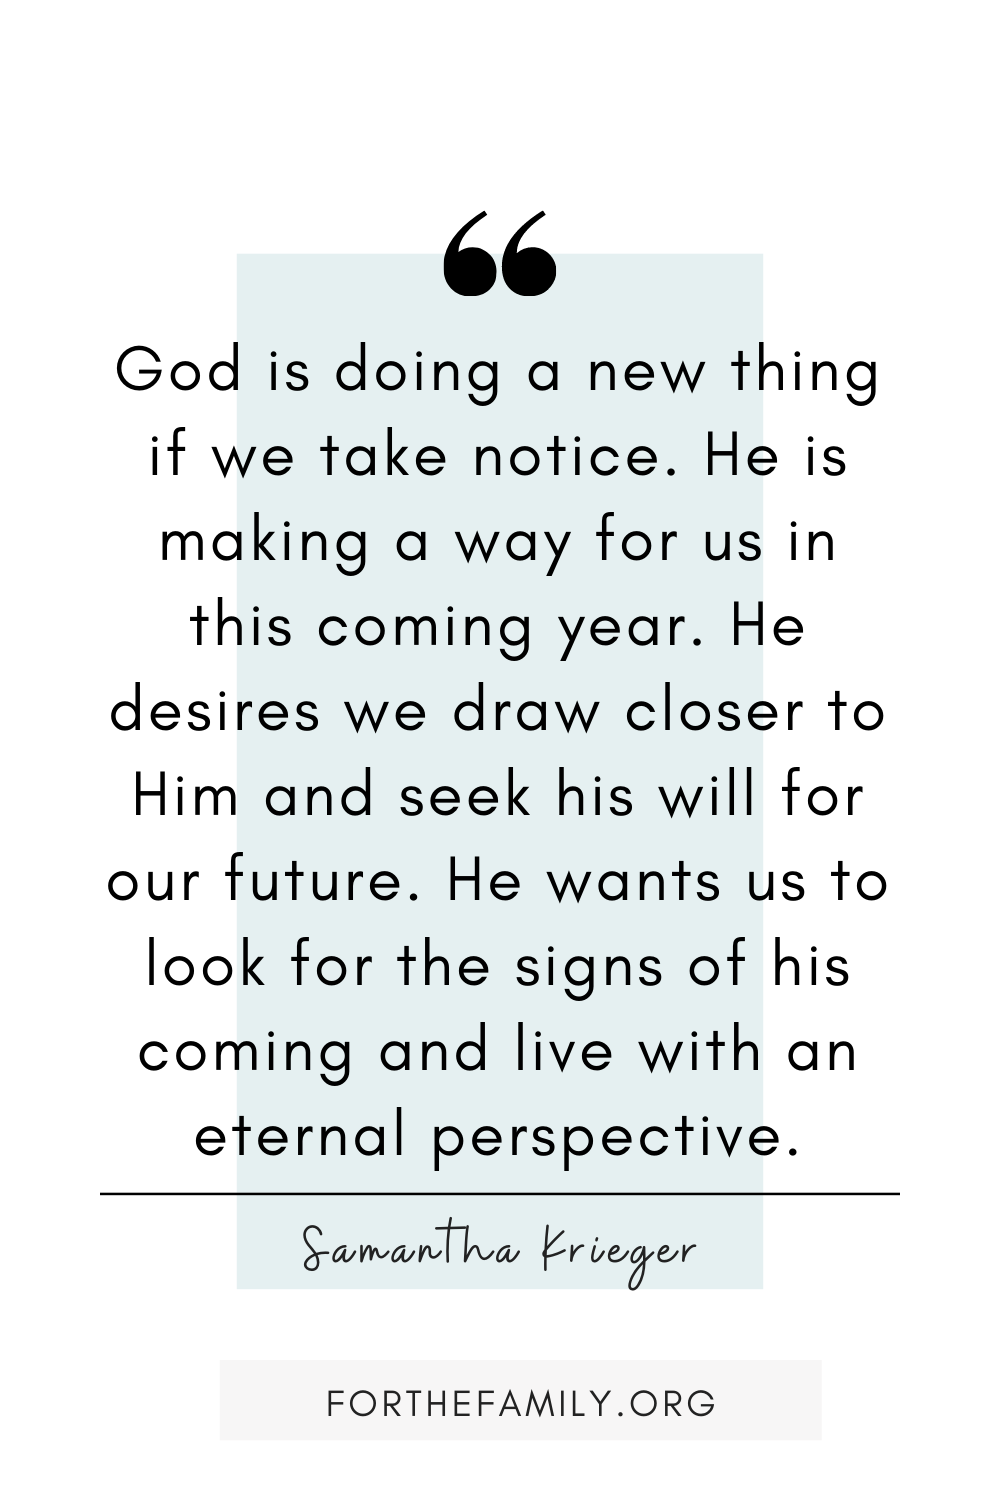 """God is doing a new thing if we take notice. He is making a way for us in this coming year. He desires we draw closer to Him and seek his will for our future. He wants us to look for the signs of his coming and live with an eternal perspective."" Samantha Krieger"